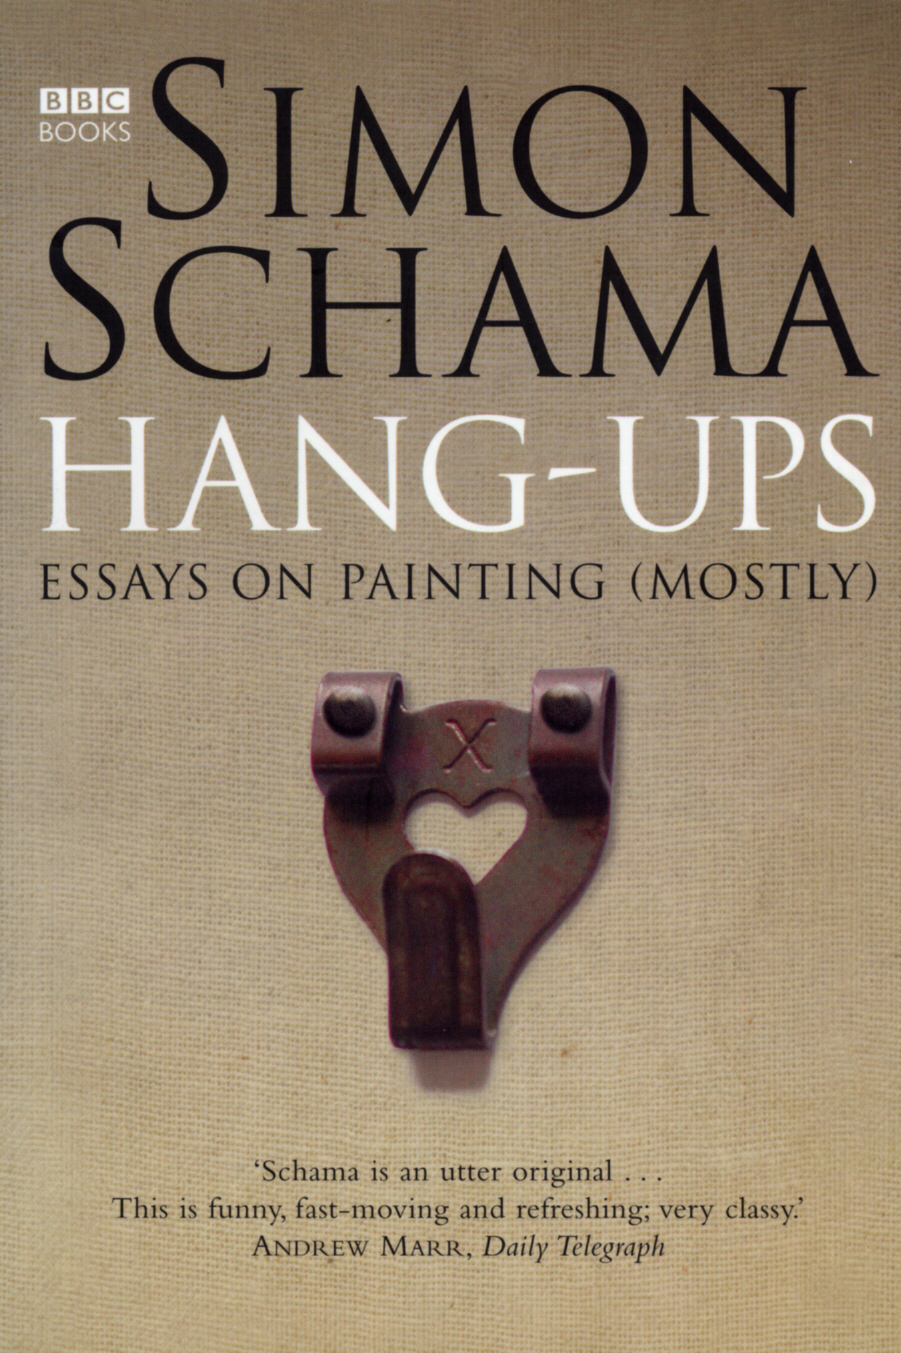 Hang-Ups Essays on Painting (Mostly)